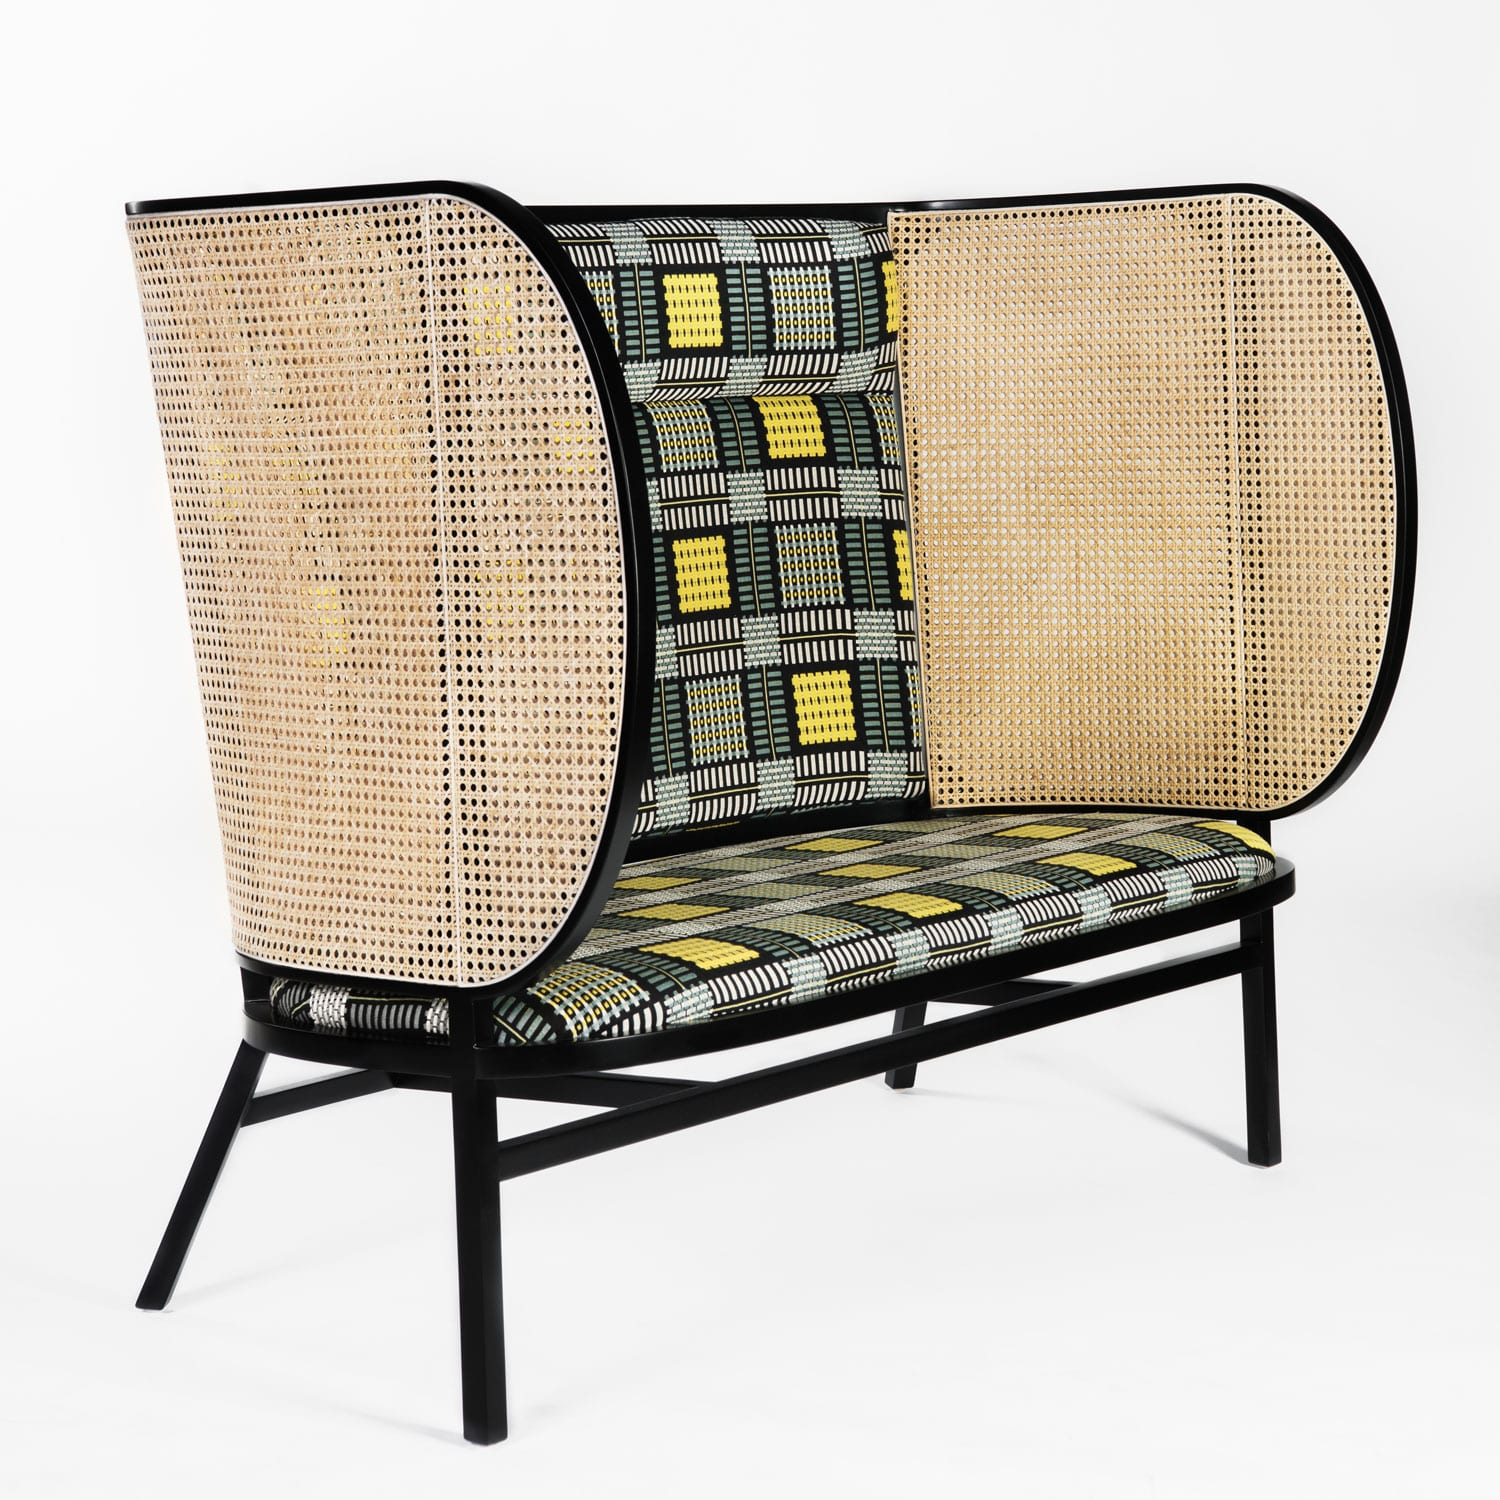 Hideout Loveseat by Gebruder Thonet Vienna GmbH at Maison & Objet 2018 | Yellowtrace